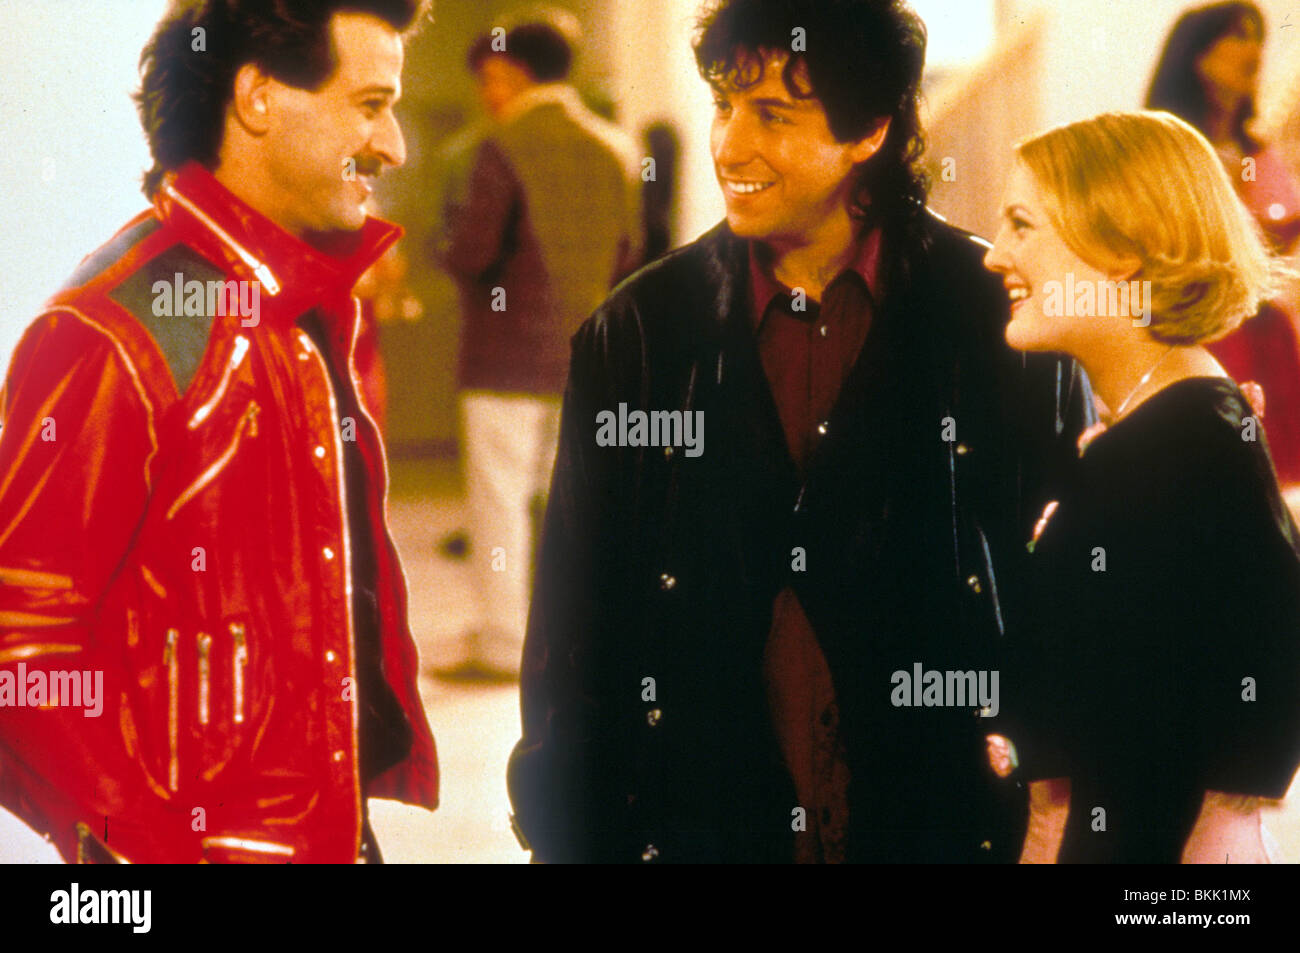 THE WEDDING SINGER (1998) ALLEN COVERT, ADAM SANDLER, DREW ...